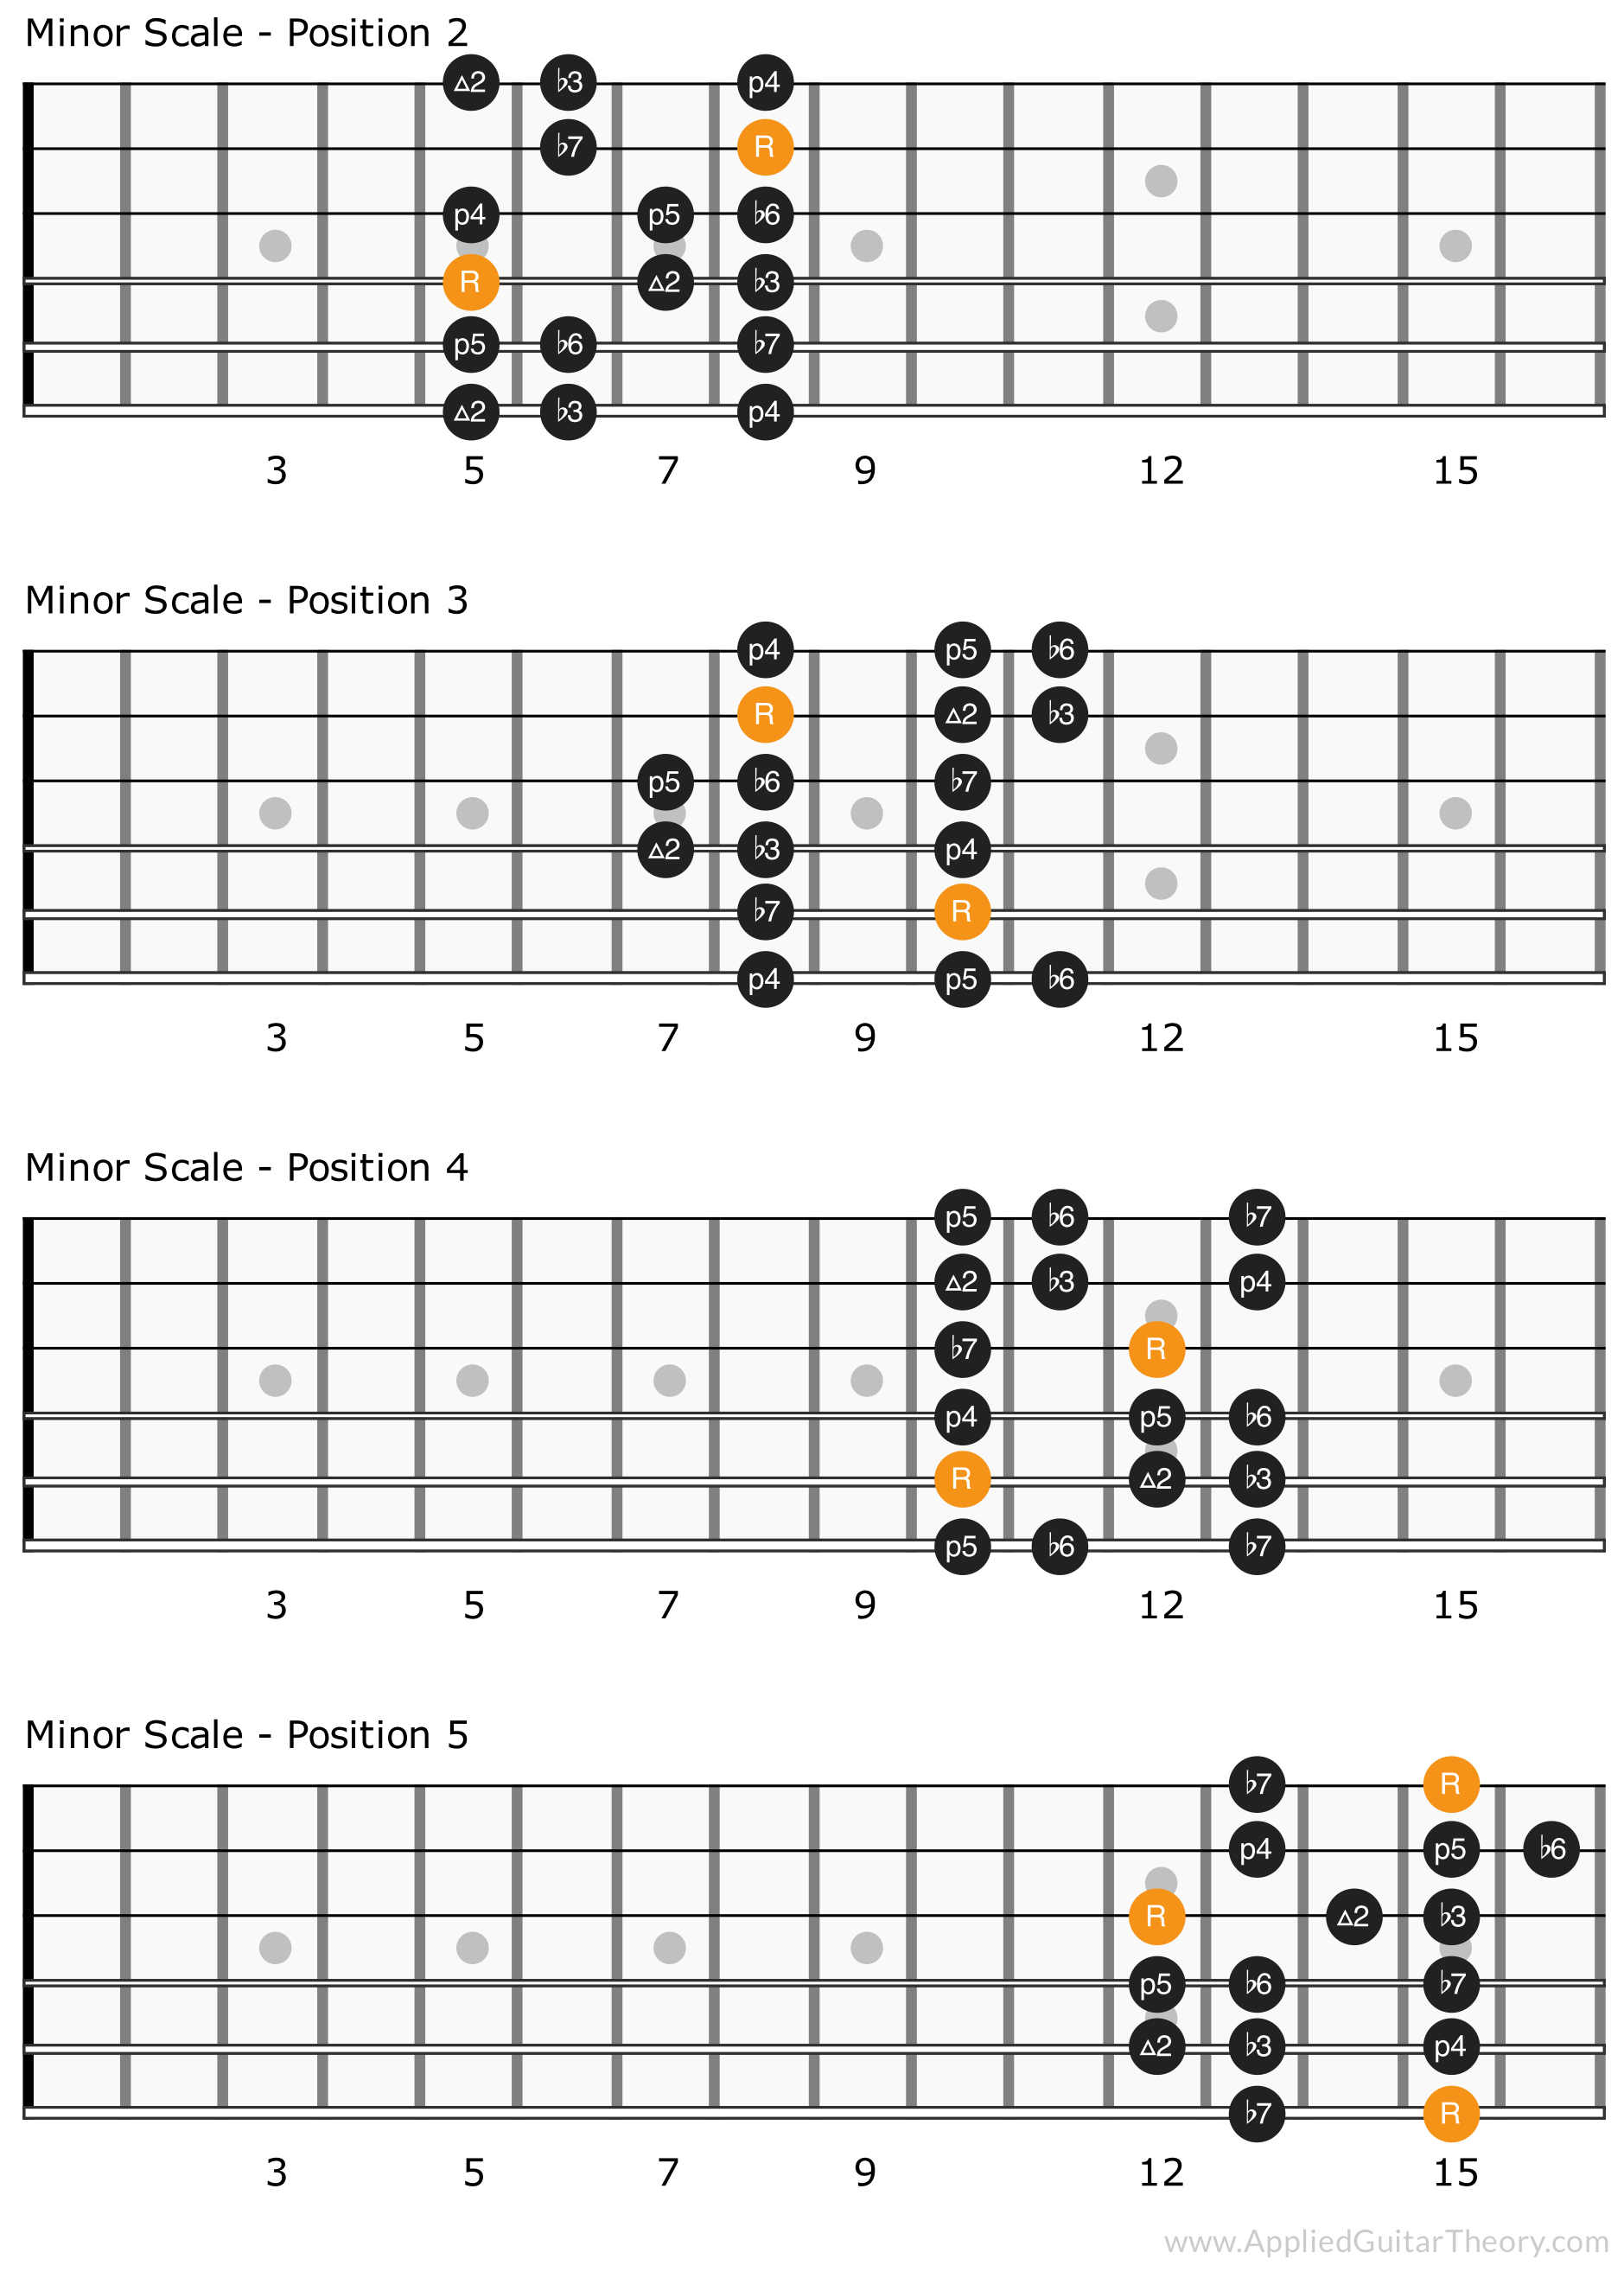 Minor scale patterns for positions 2 - 5